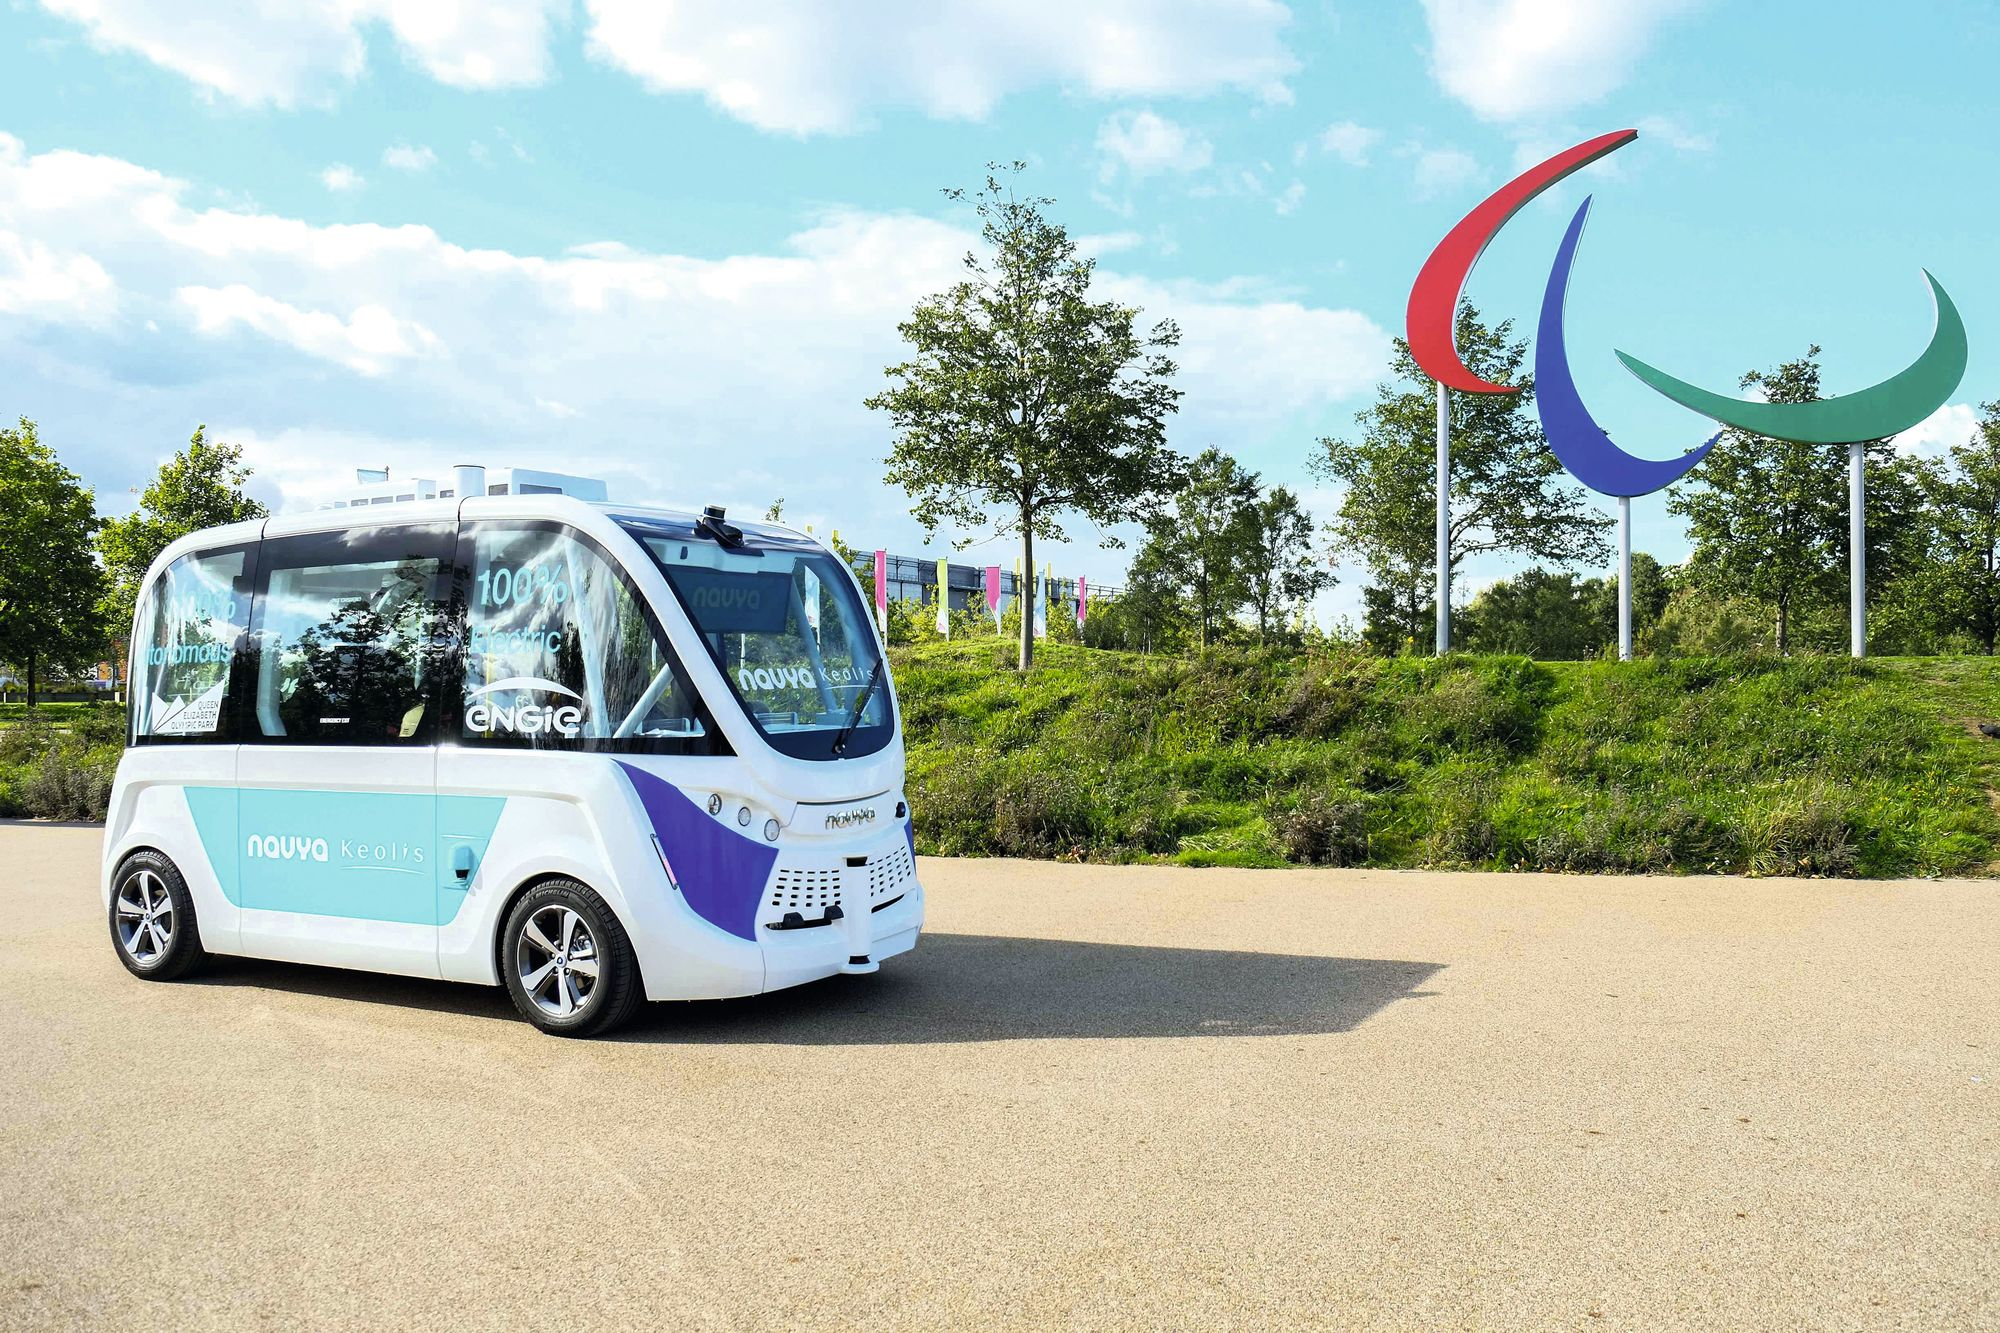 Driverless bus in the Olympic Park, London, 2017.